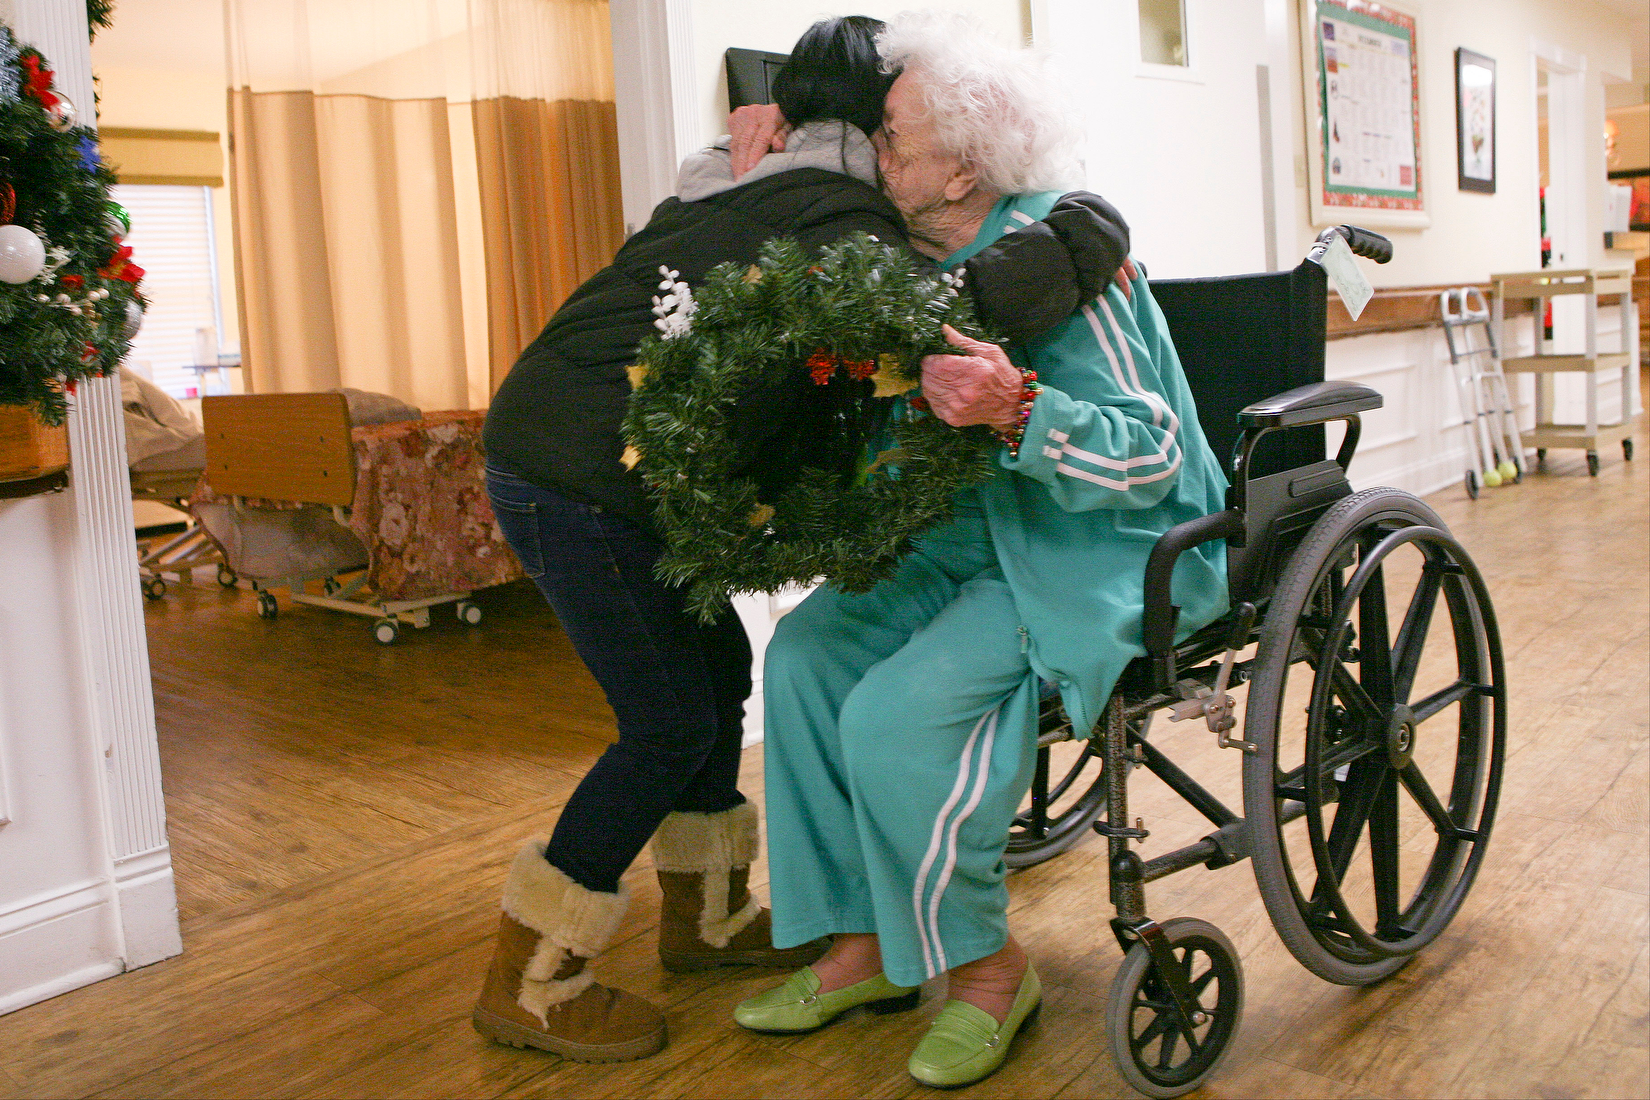 "Kim Nguyen (left) hugs Eva Sergeant, 95, after giving her a wreath at Community Outreach's Young at Heart distribution of wreaths at Mayfair Manor in Lexington, Ky. Sergeant reached for Nguyen after being handed a wreath, saying that it was ""so nice"" to have a visitor. Afterwards Nguyen said the hugs and smiles she received from residents were well worth the time spent making the wreaths and handing them out."